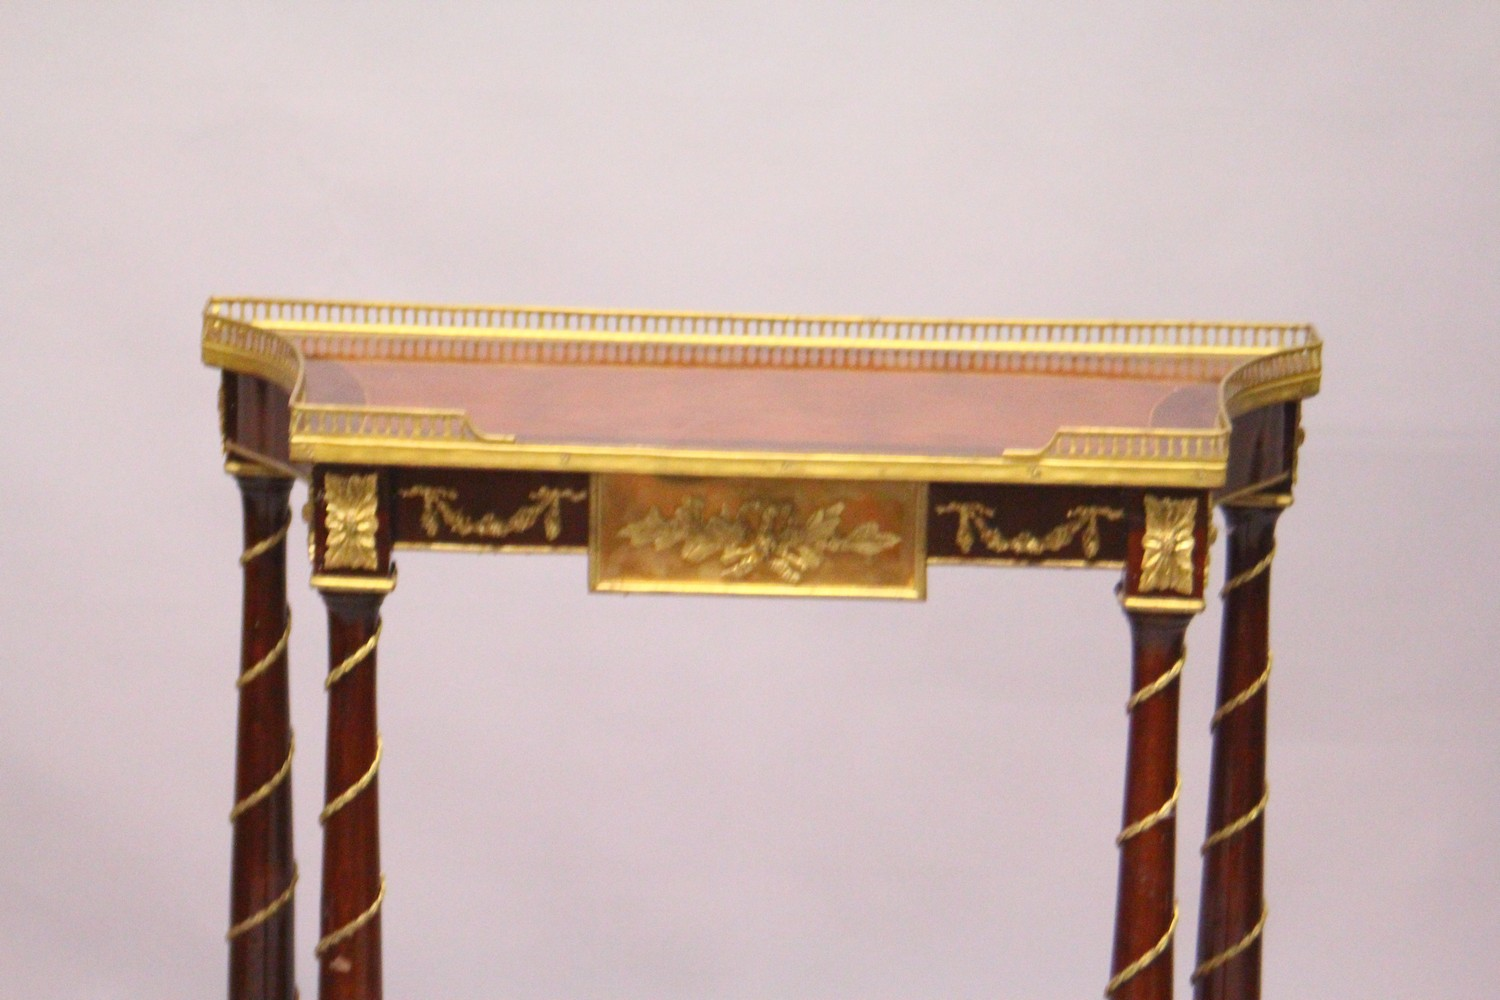 A FRENCH STYLE MAHOGANY AND ORMOLU TWO-TIER CONSOLE TABLE. 2ft 4ins wide x 2ft 9ins high x 1ft - Image 2 of 3